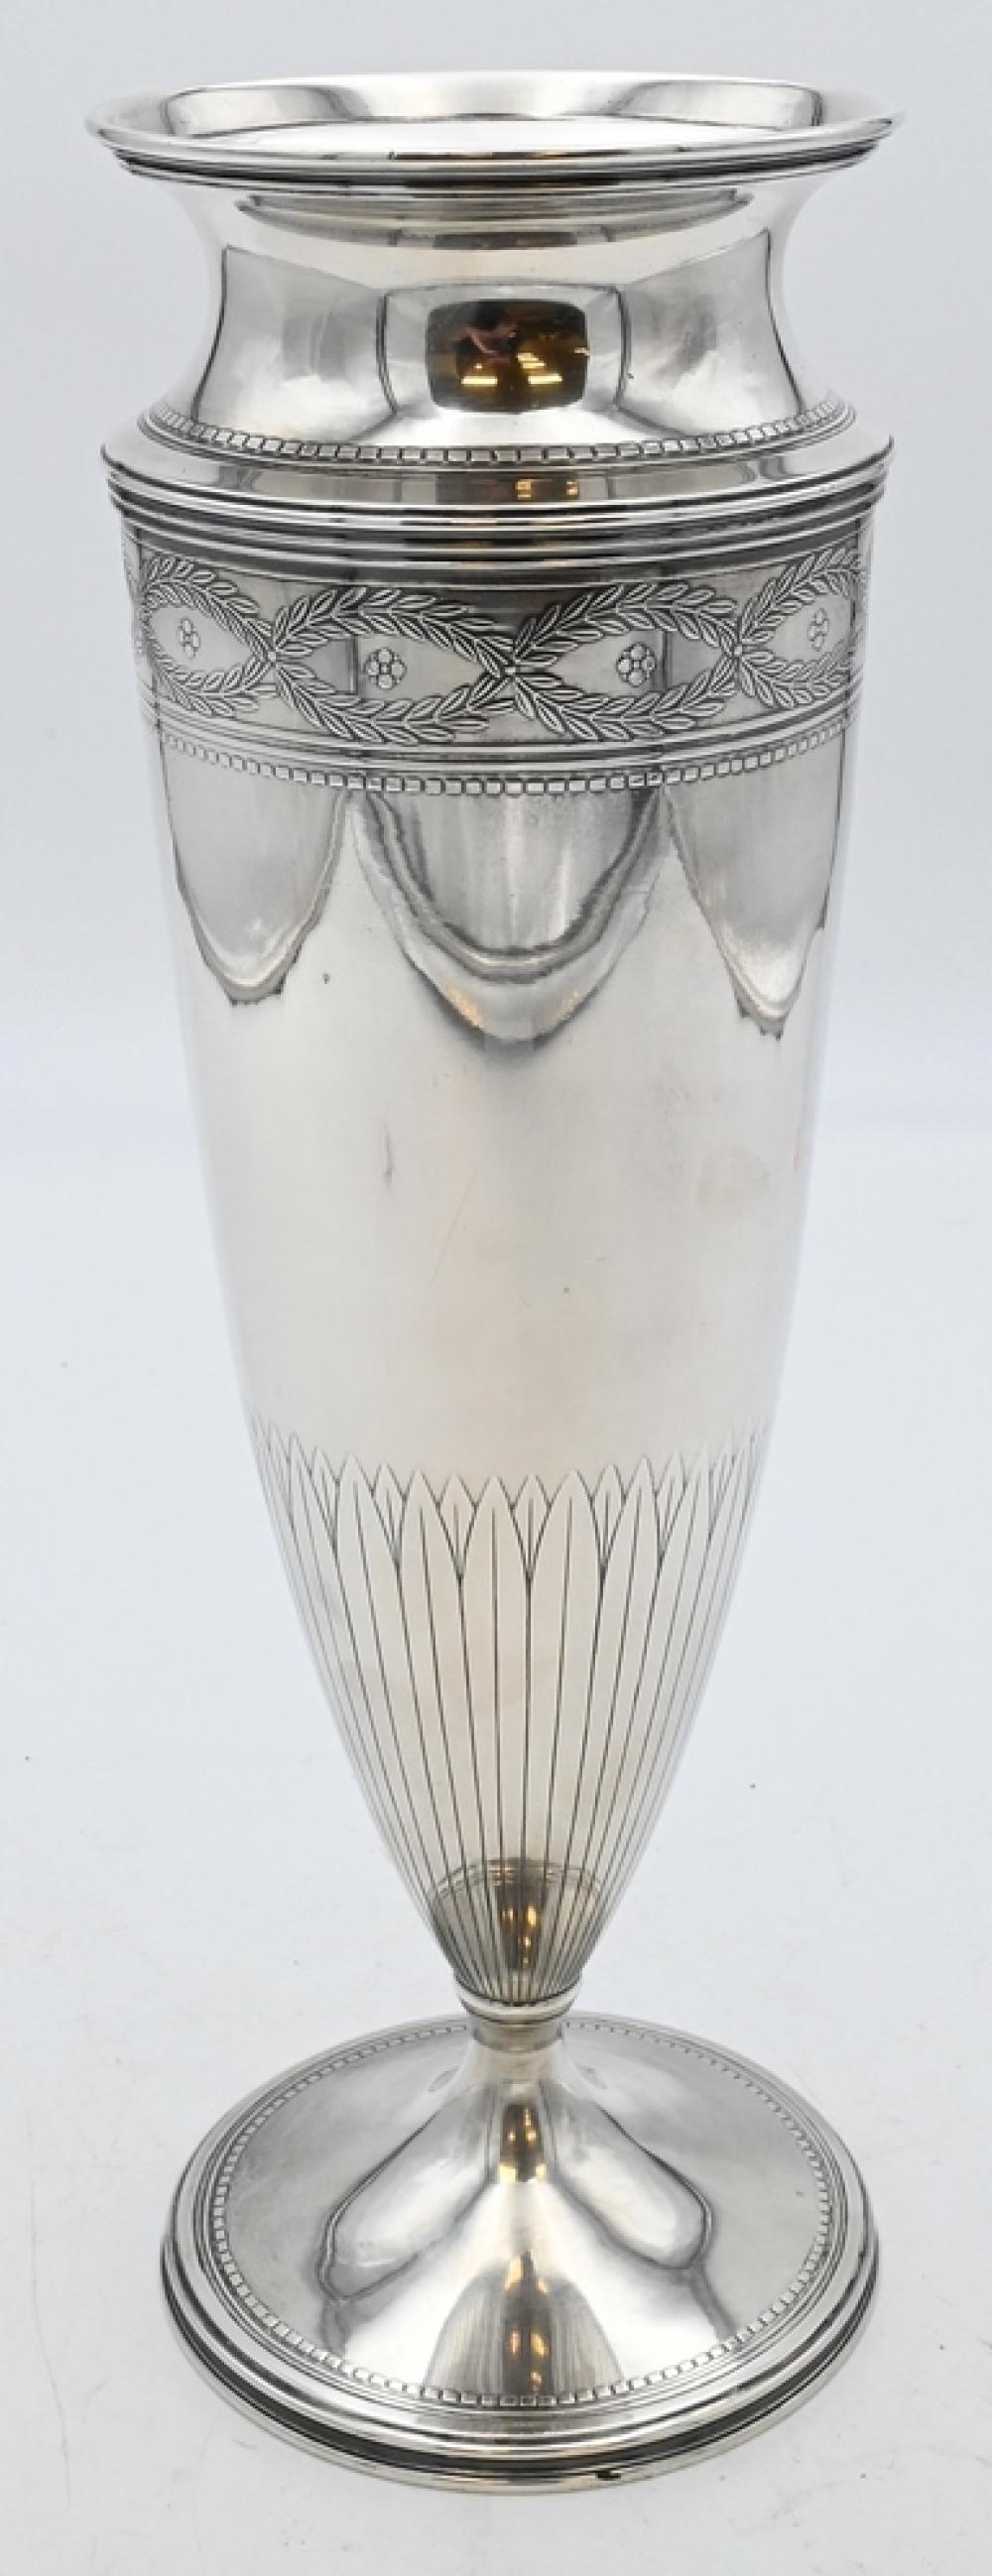 Tiffany Sterling Silver Footed Vasemarked Tiffany & Company 19229Amakers 8005 sterling silverheight 14 inches, 36.8 t.oz.